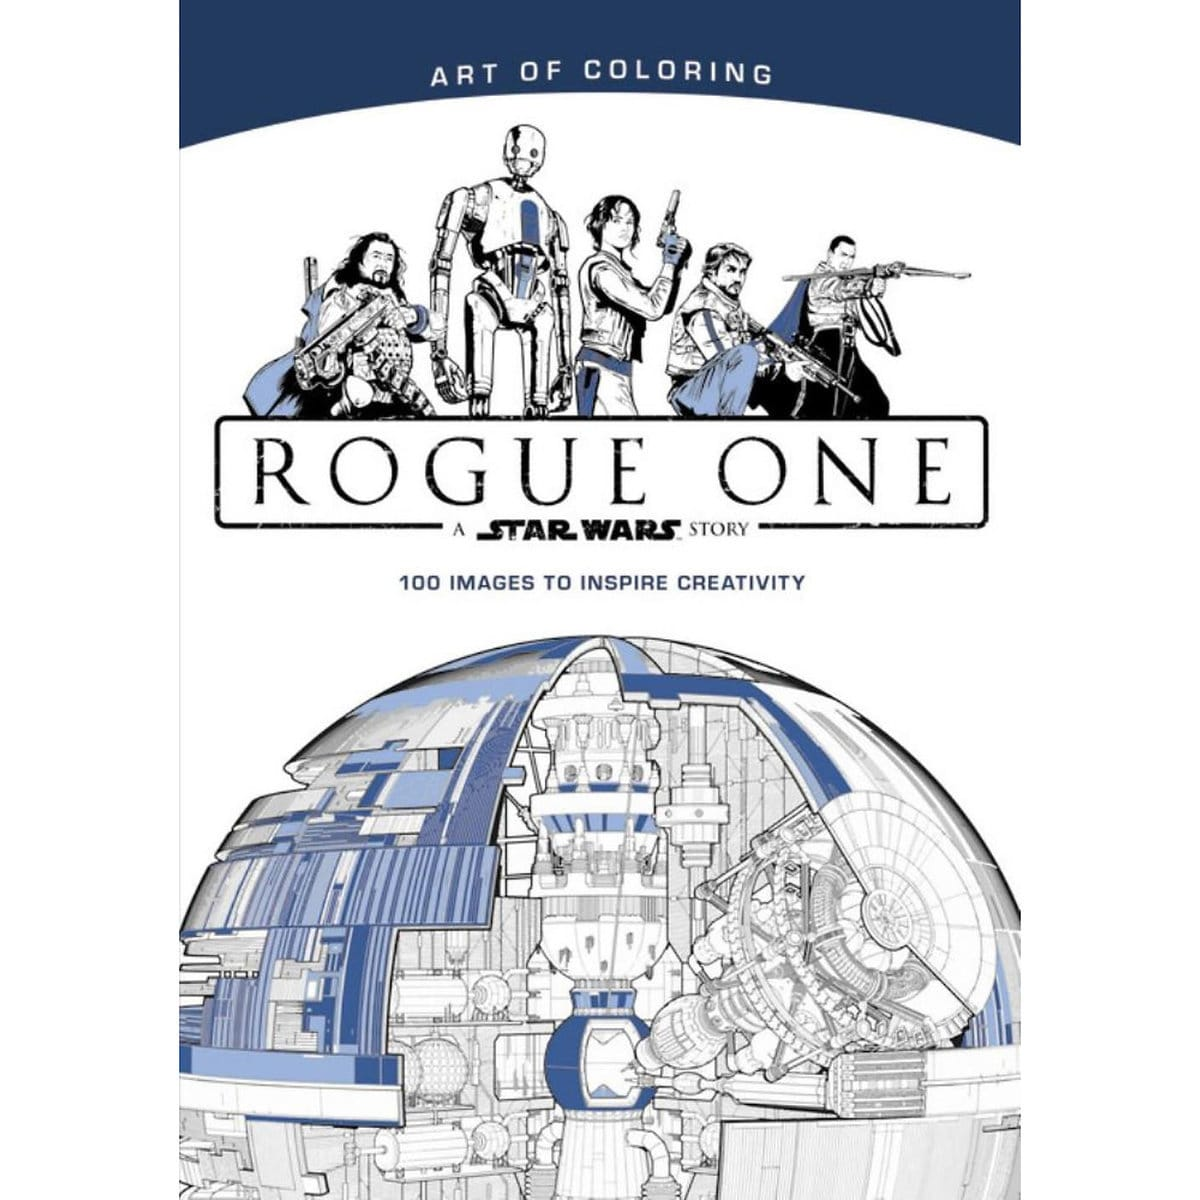 rogue one a star wars story art of coloring book shopdisney